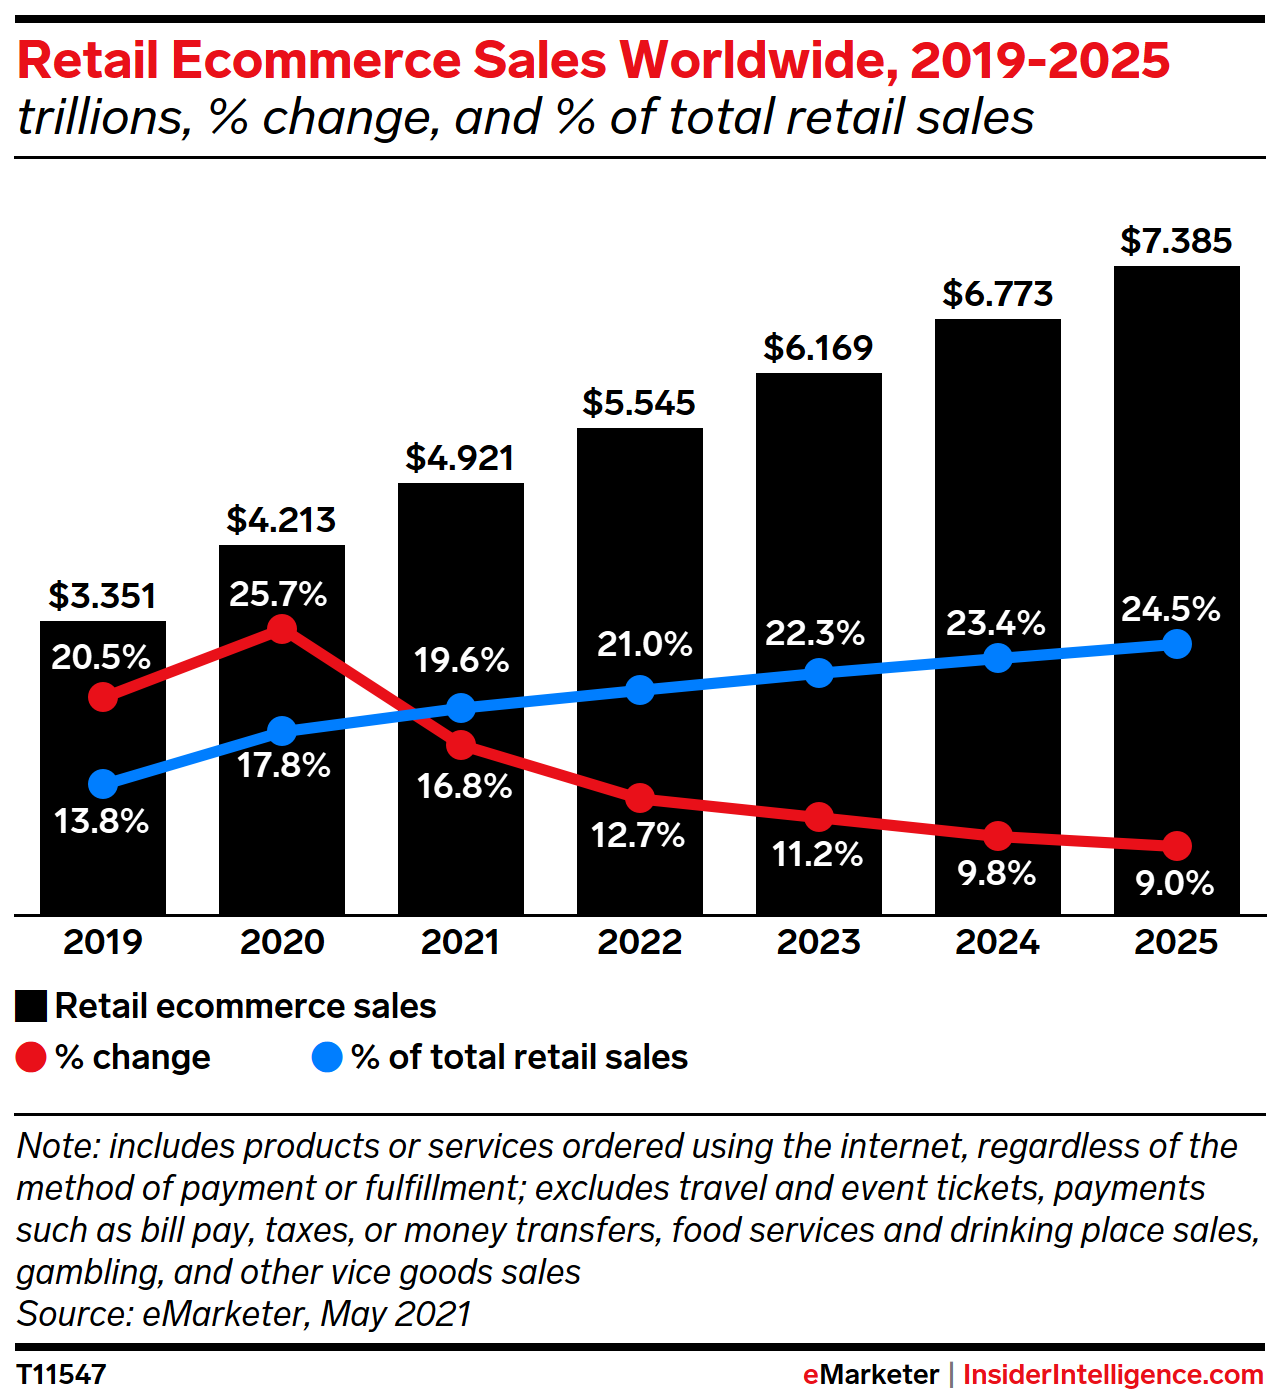 Retail Ecommerce Sales Worldwide, 2019-2025 (trillions, % change, and % of total retail sales)